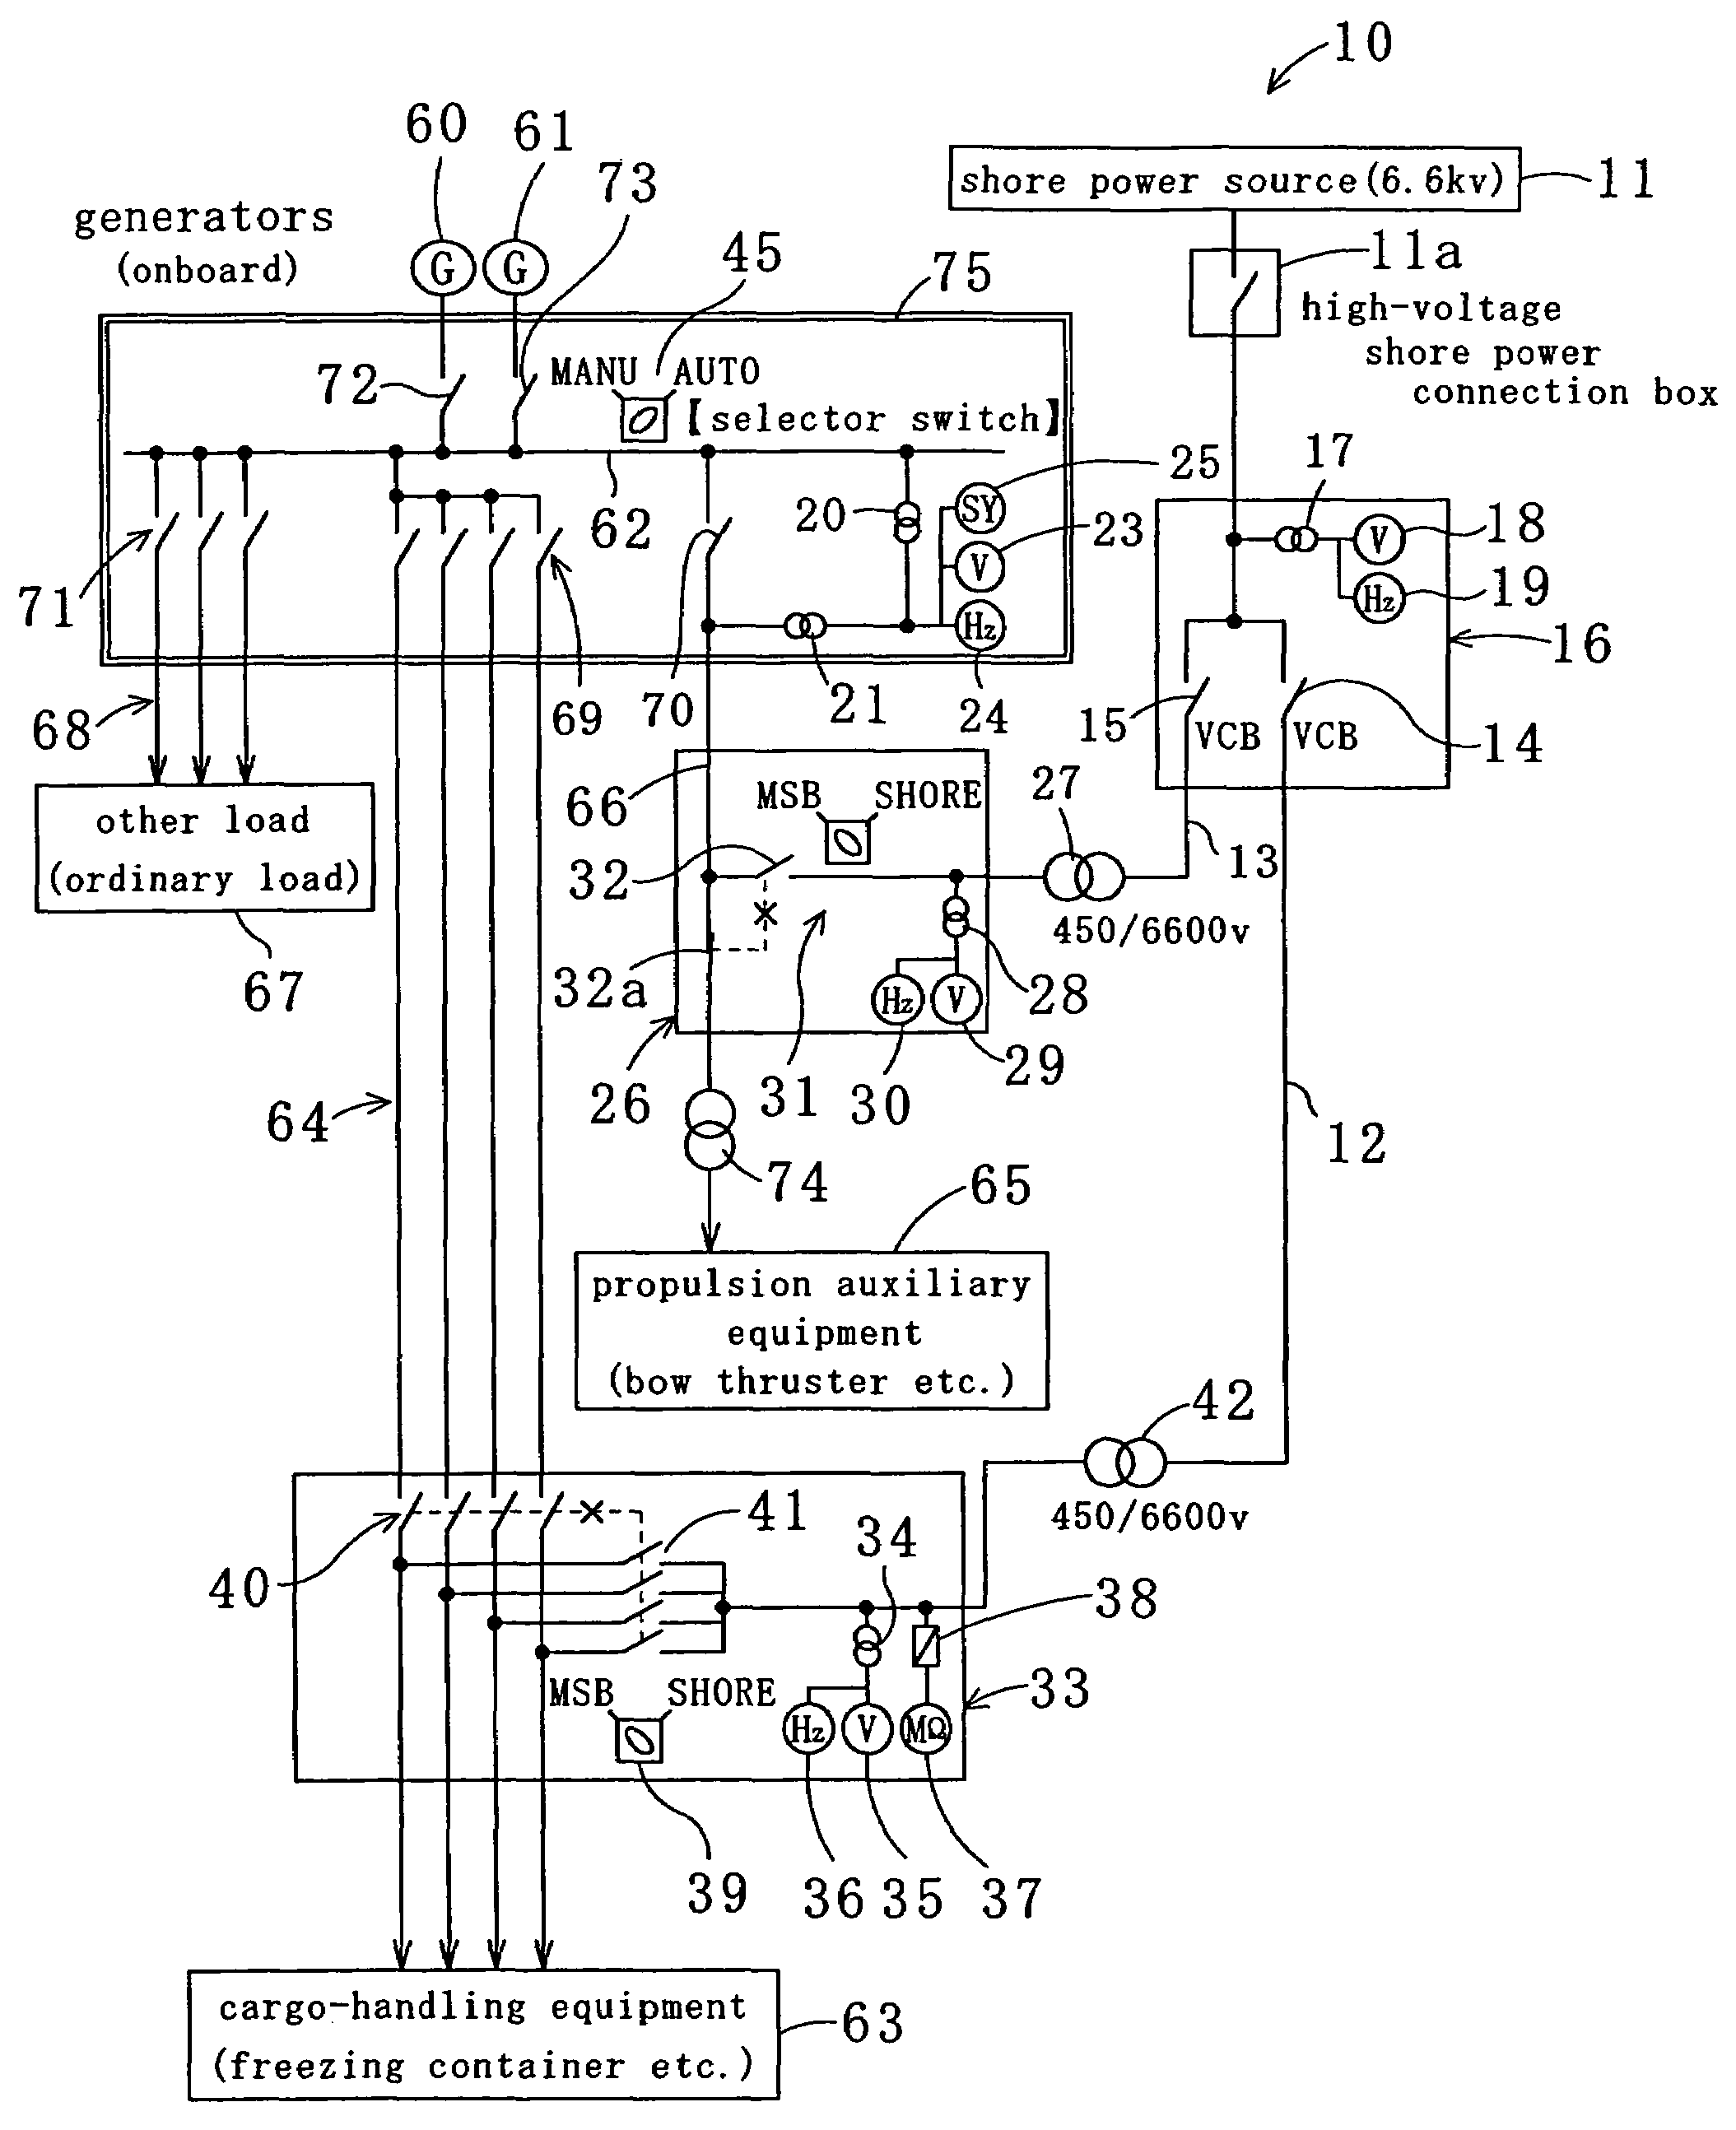 US07253538 20070807 D00000 patent us7253538 method of supplying electric power from shore vcb panel wiring diagram at couponss.co